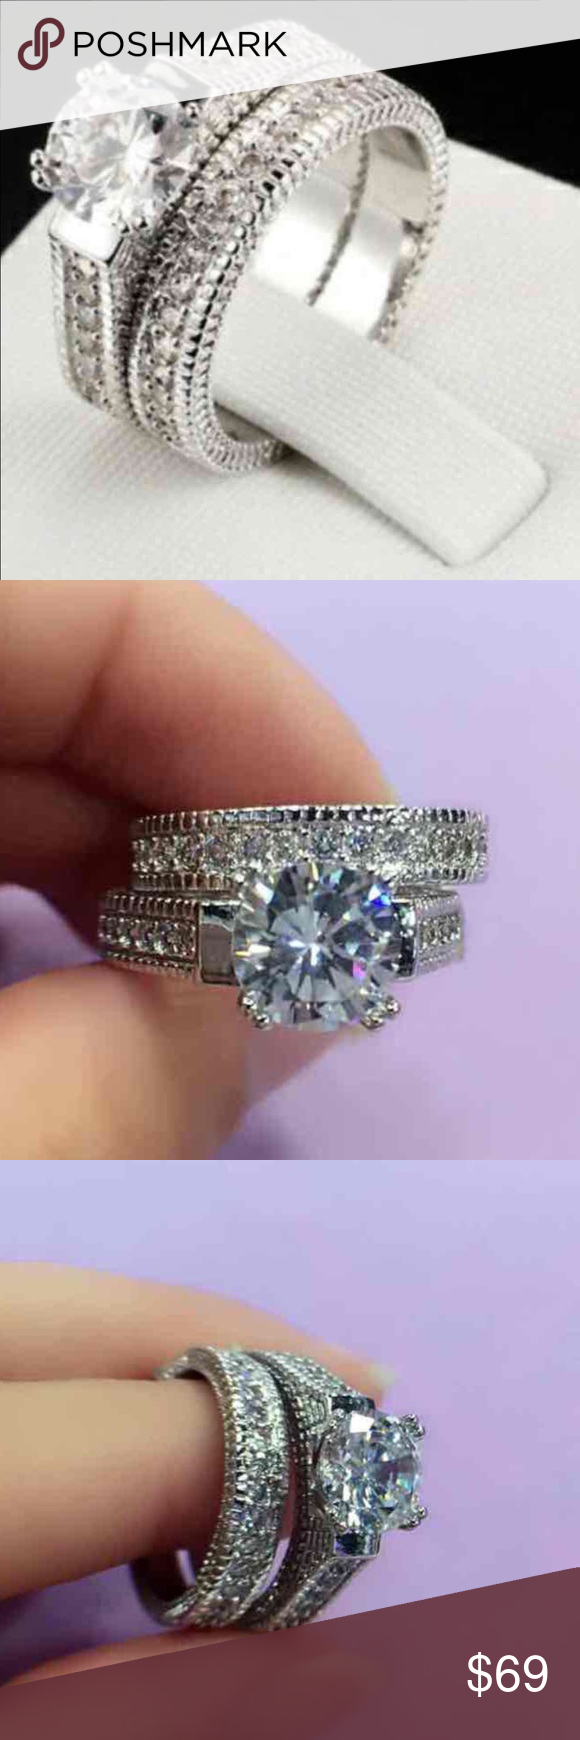 18 k white gold wedding ring set new Brand new 18 k white gold filled with lab created diamonds engagement wedding ring set . Also have in my listing I have other engagement ring and wedding ring set, wedding band, rose gold ring, yellow gold ring, wedding ring set, Men's wedding band, wedding ring. Available in all sizes. Swarovski Jewelry Rings